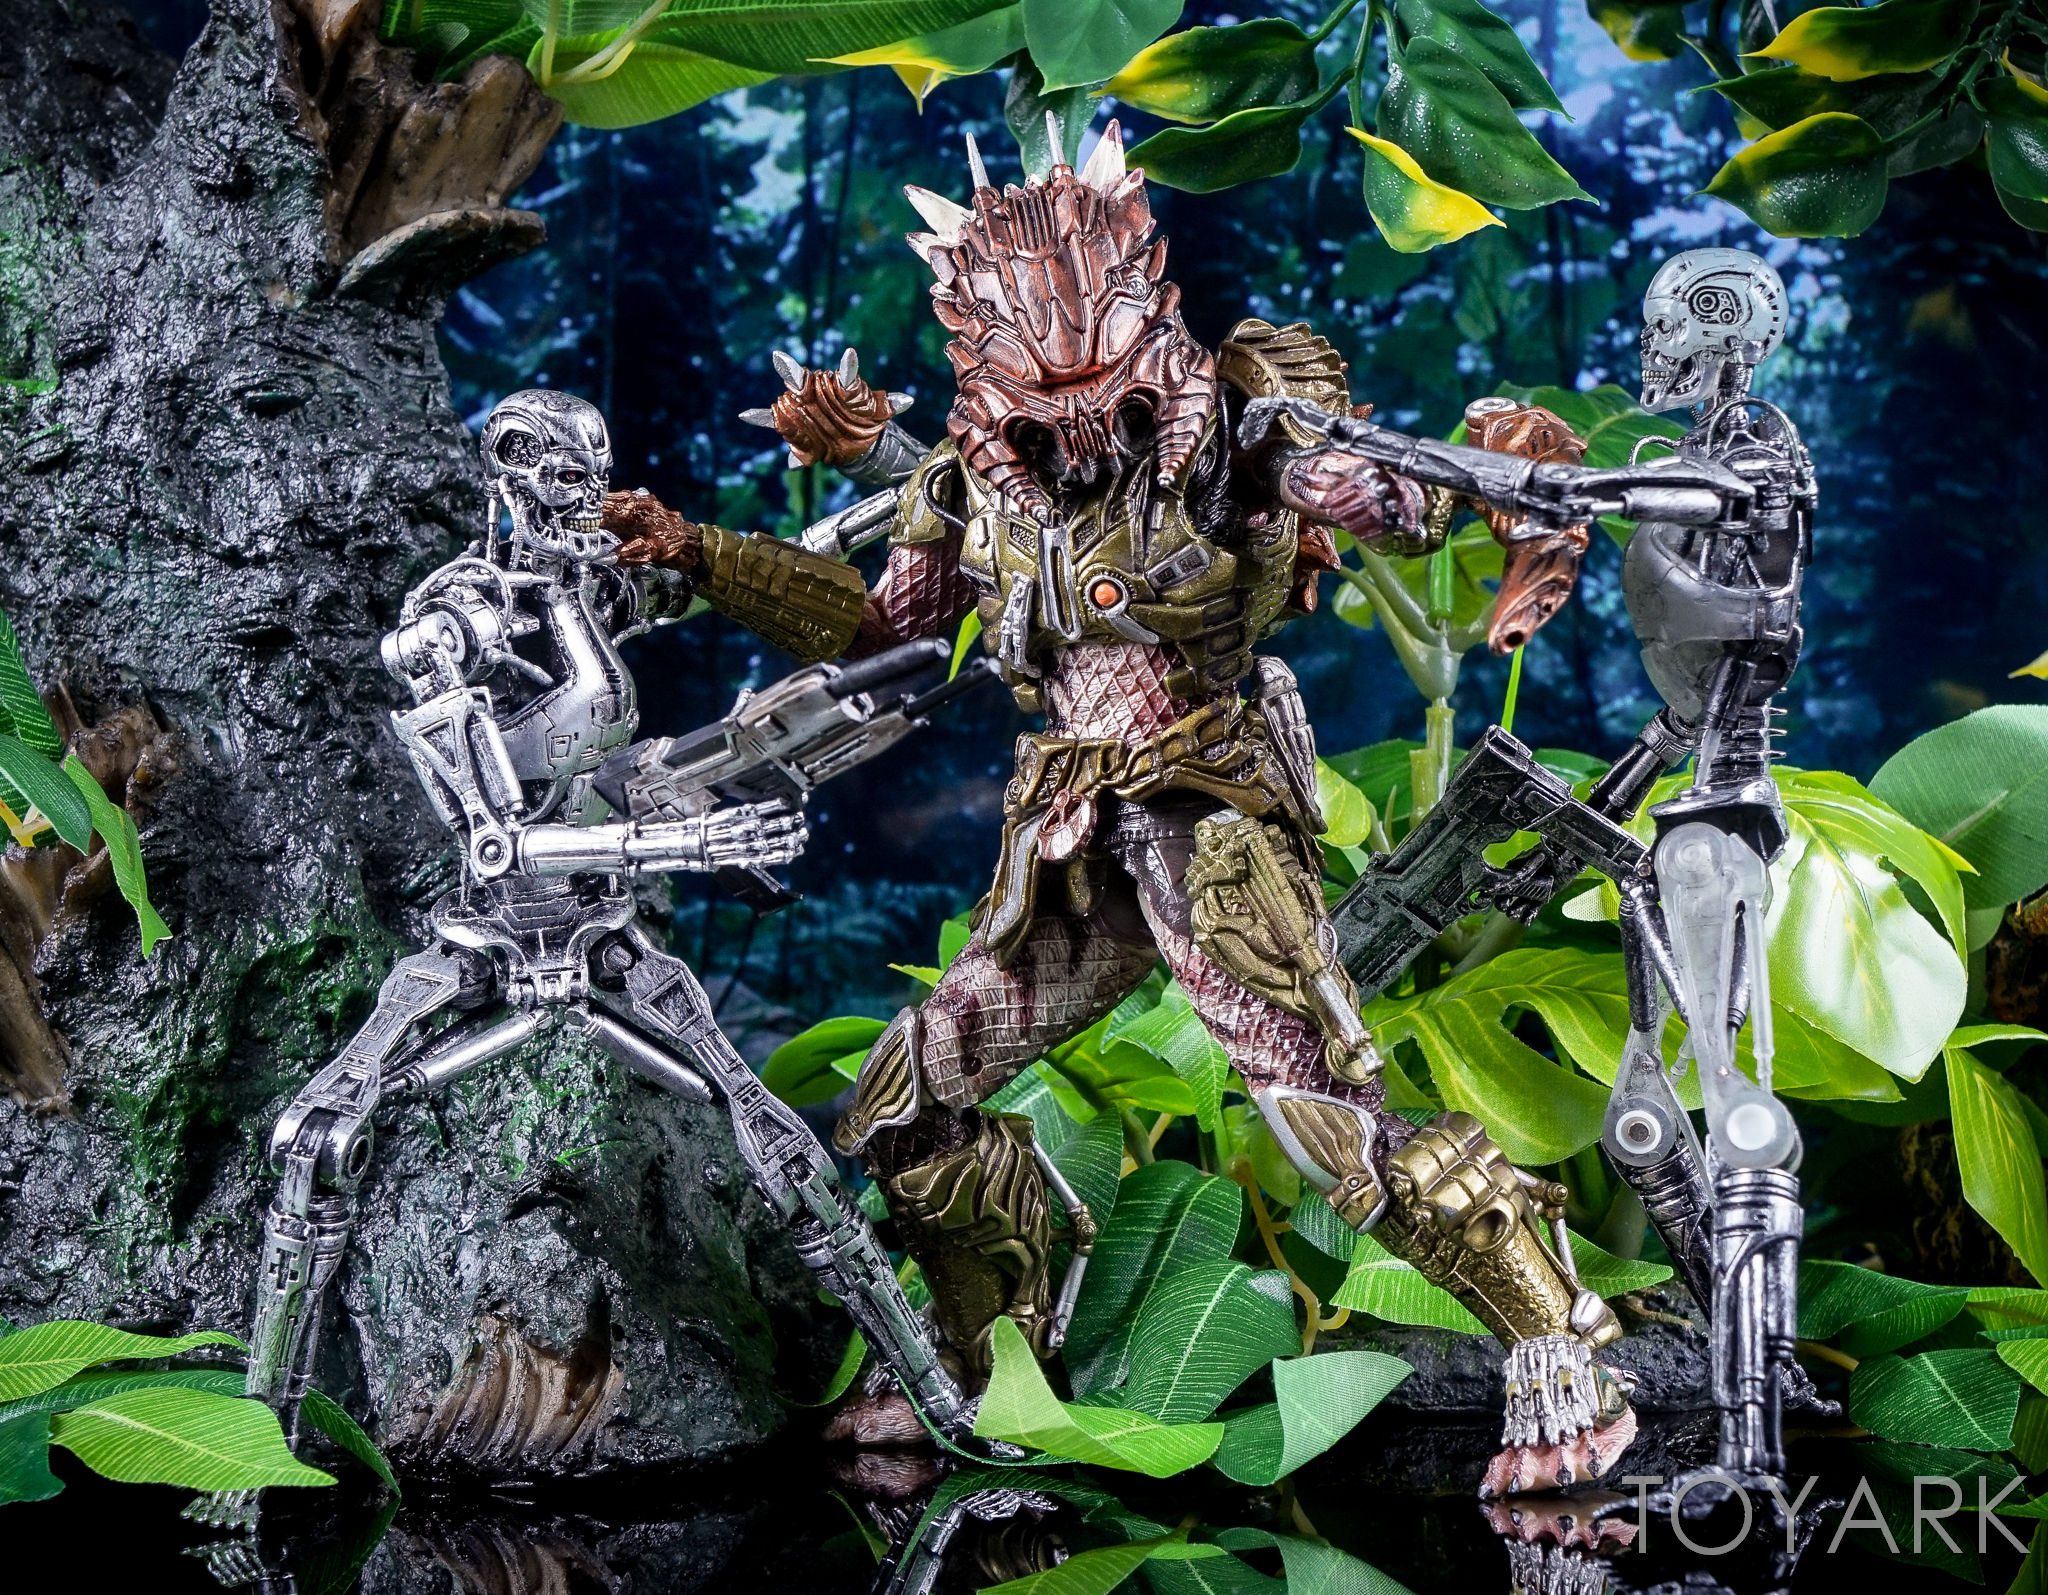 http://news.toyark.com/wp-content/uploads/sites/4/2016/10/Predator-Series-16-NECA-150.jpg